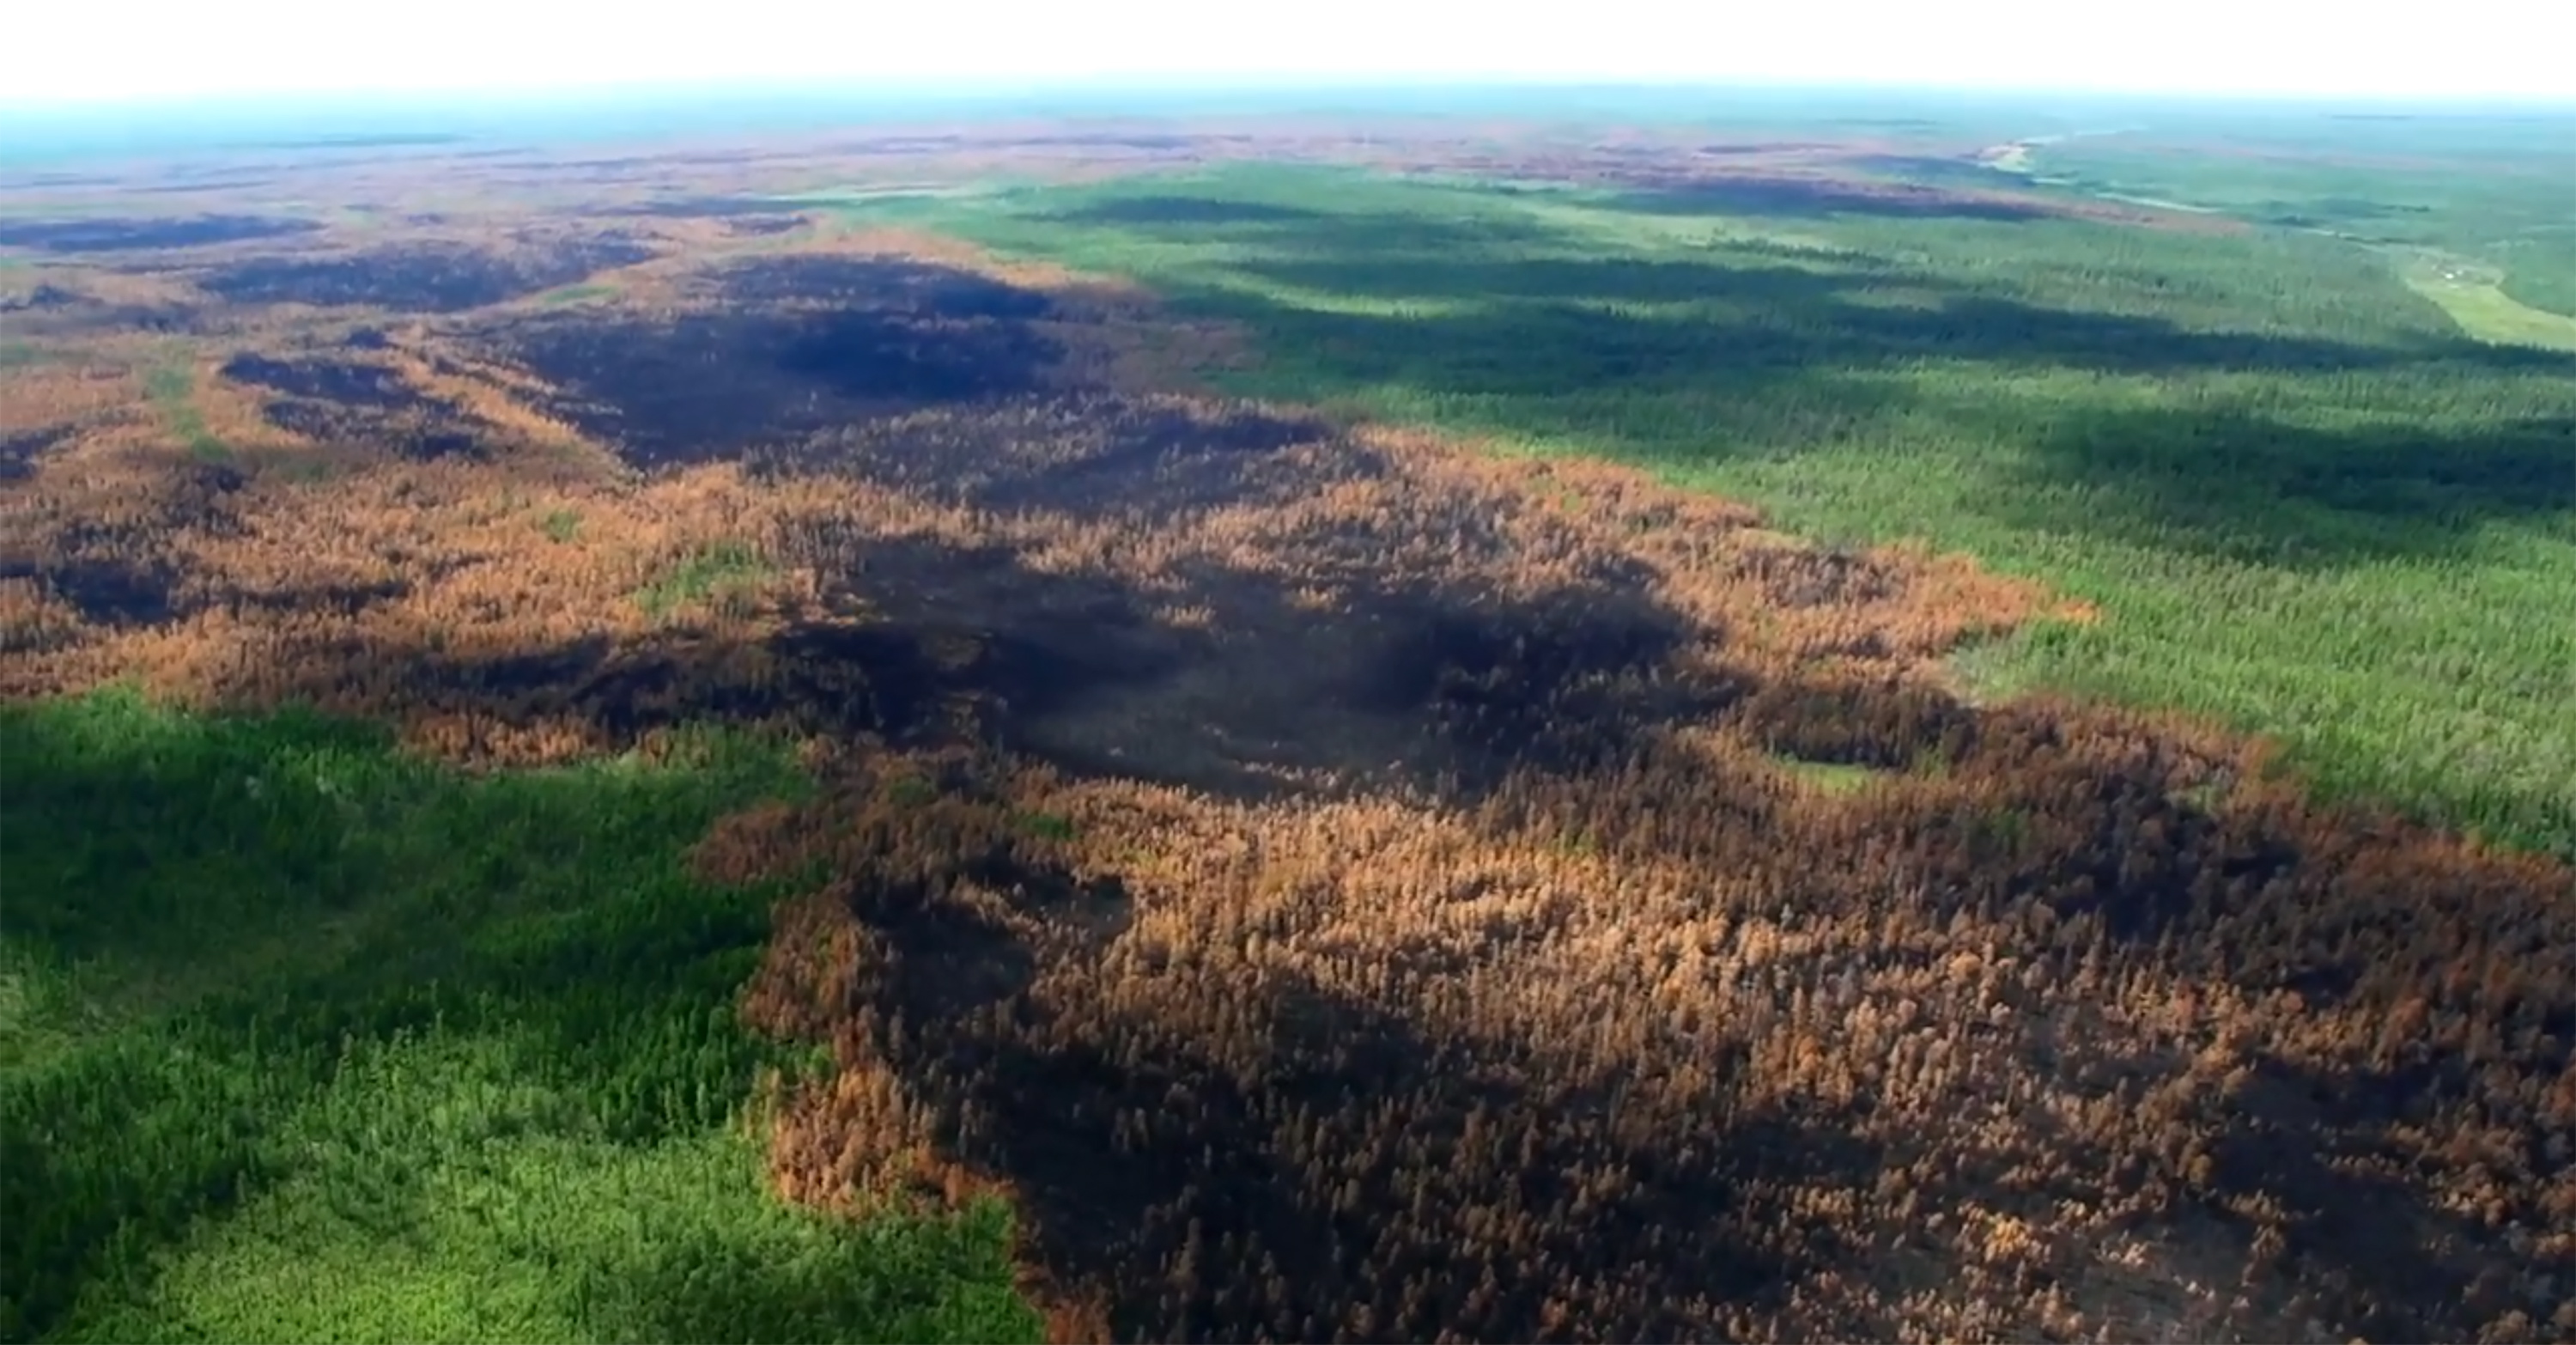 An aerial view of forests burned in wildfires; over 1 million hectares of woodland have been hit by wildfires in Russia's Krasnoyarsk Territory.